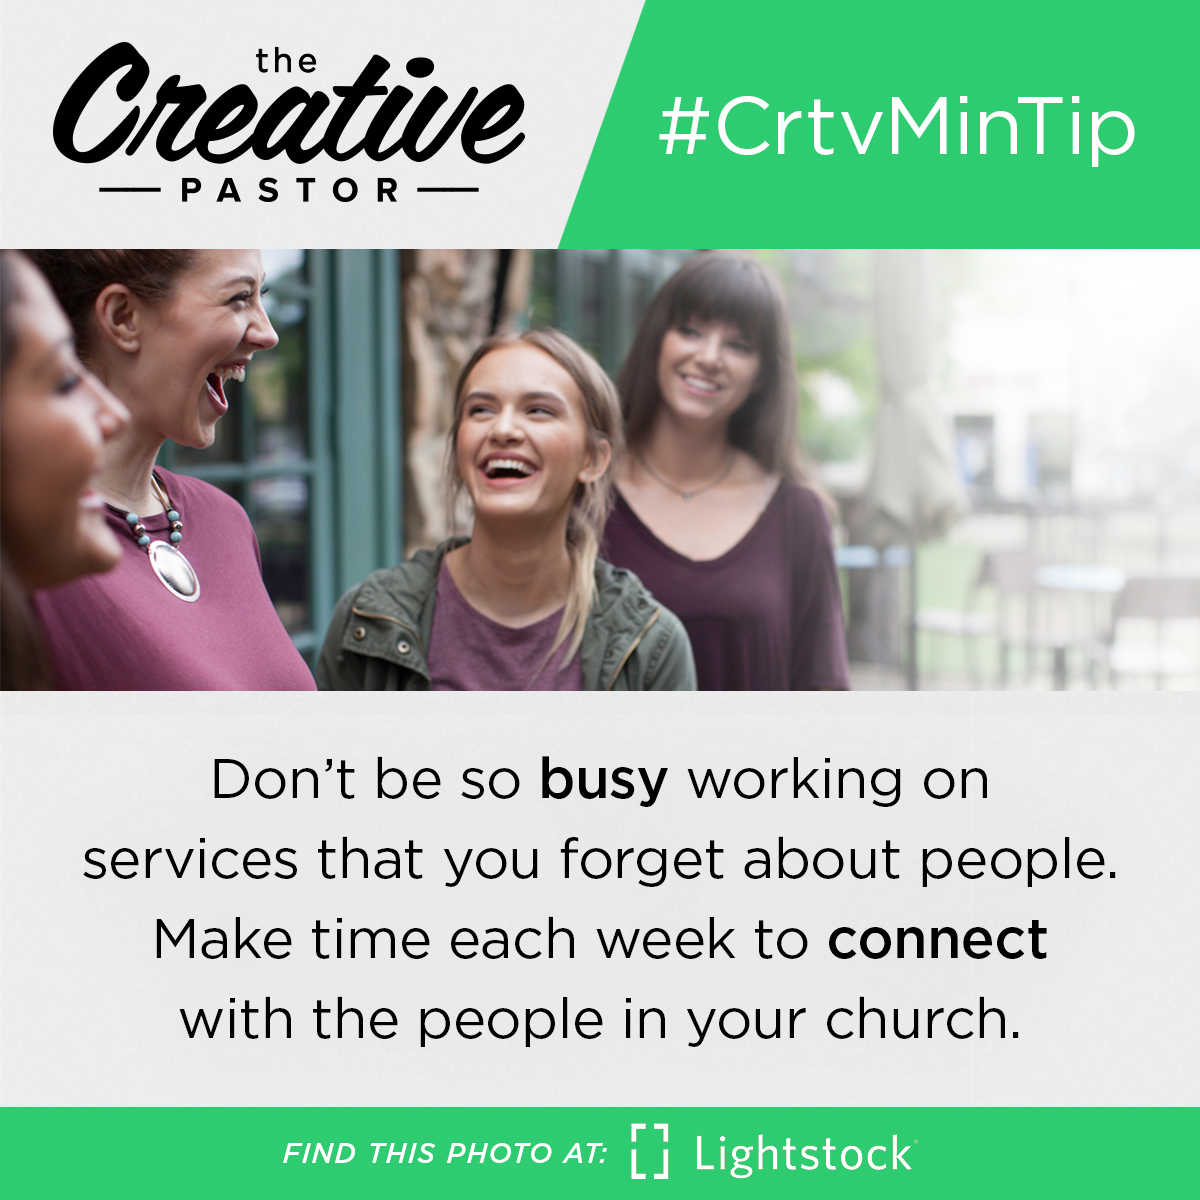 #CrtvMinTip: Don't be so busy working on services that you forget about people. Make time each week to connect with the people in your church.